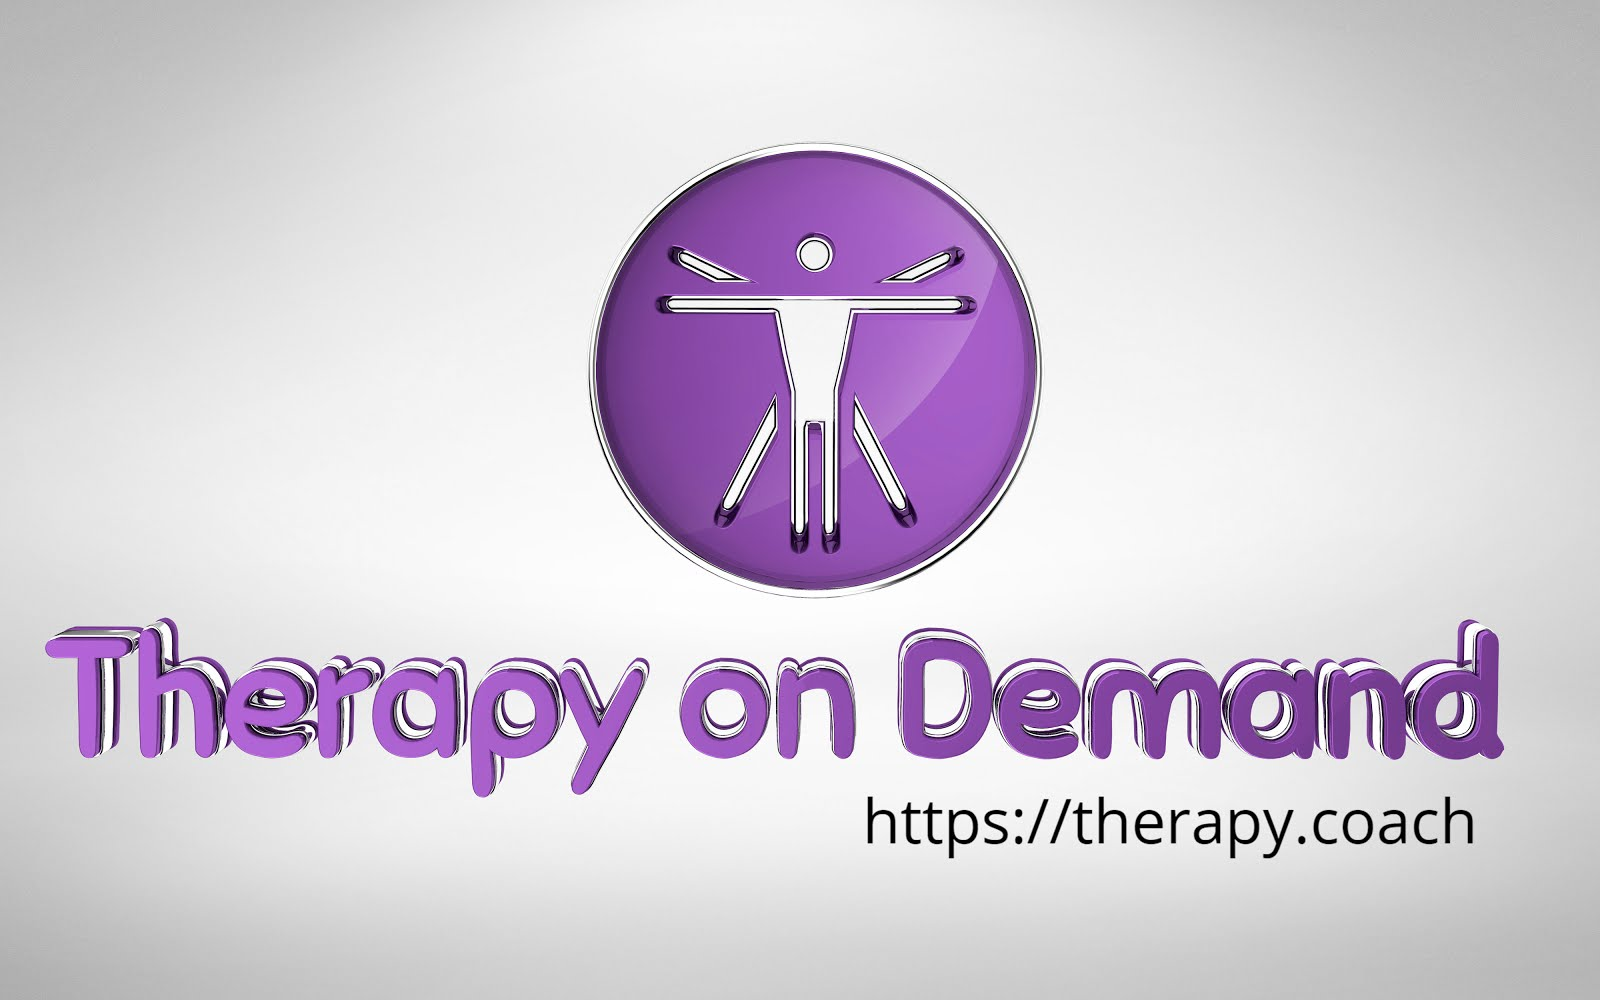 Therapy on Demand mobile